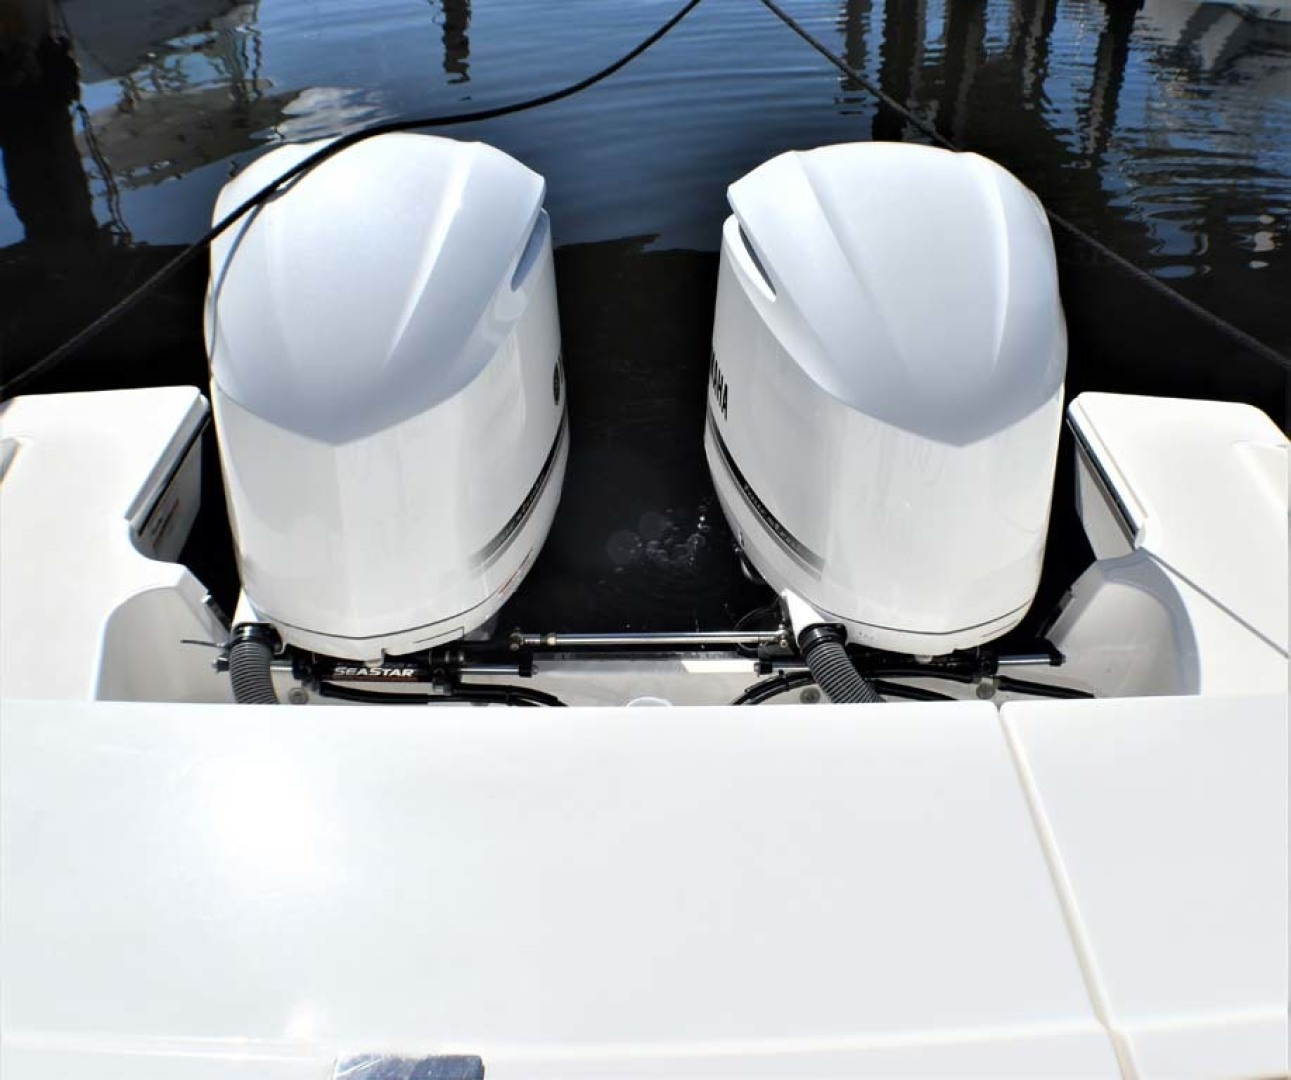 Pursuit-325 Offshore 2020-Coo Coo Miami-Florida-United States-Front of Engine Cowls-1475308 | Thumbnail